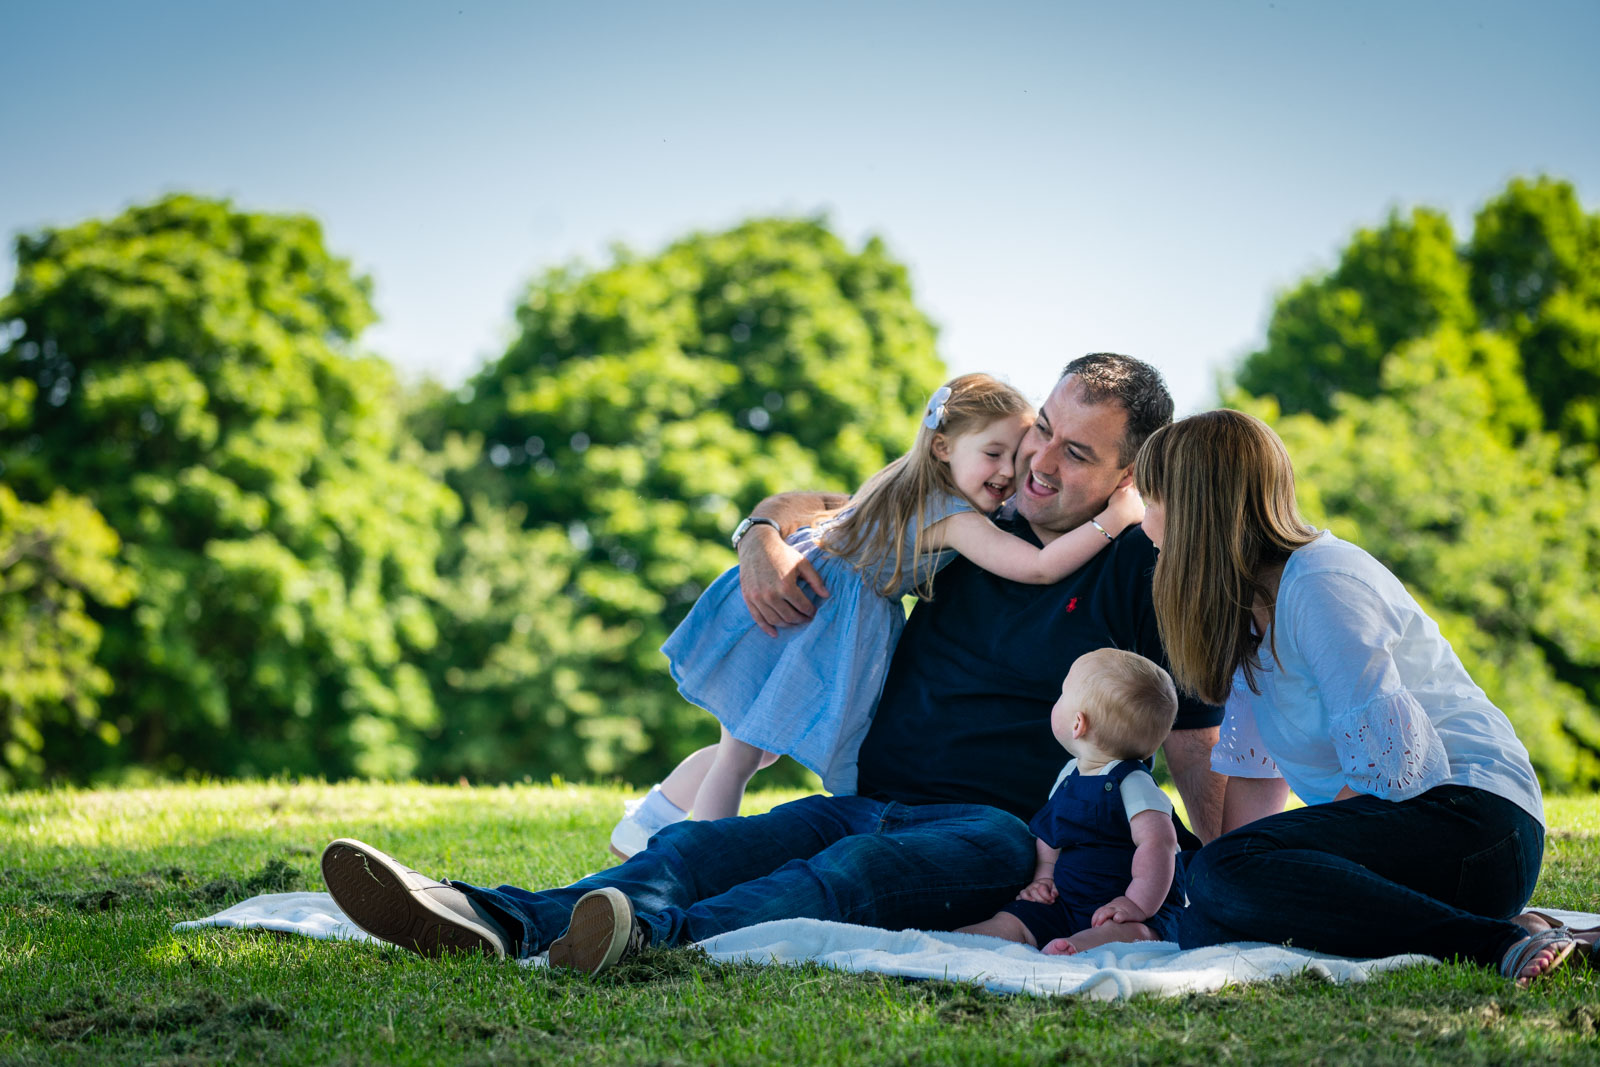 walker-family-session-bothwell-castle-glasgow-dearlyphotography (21 of 31).jpg